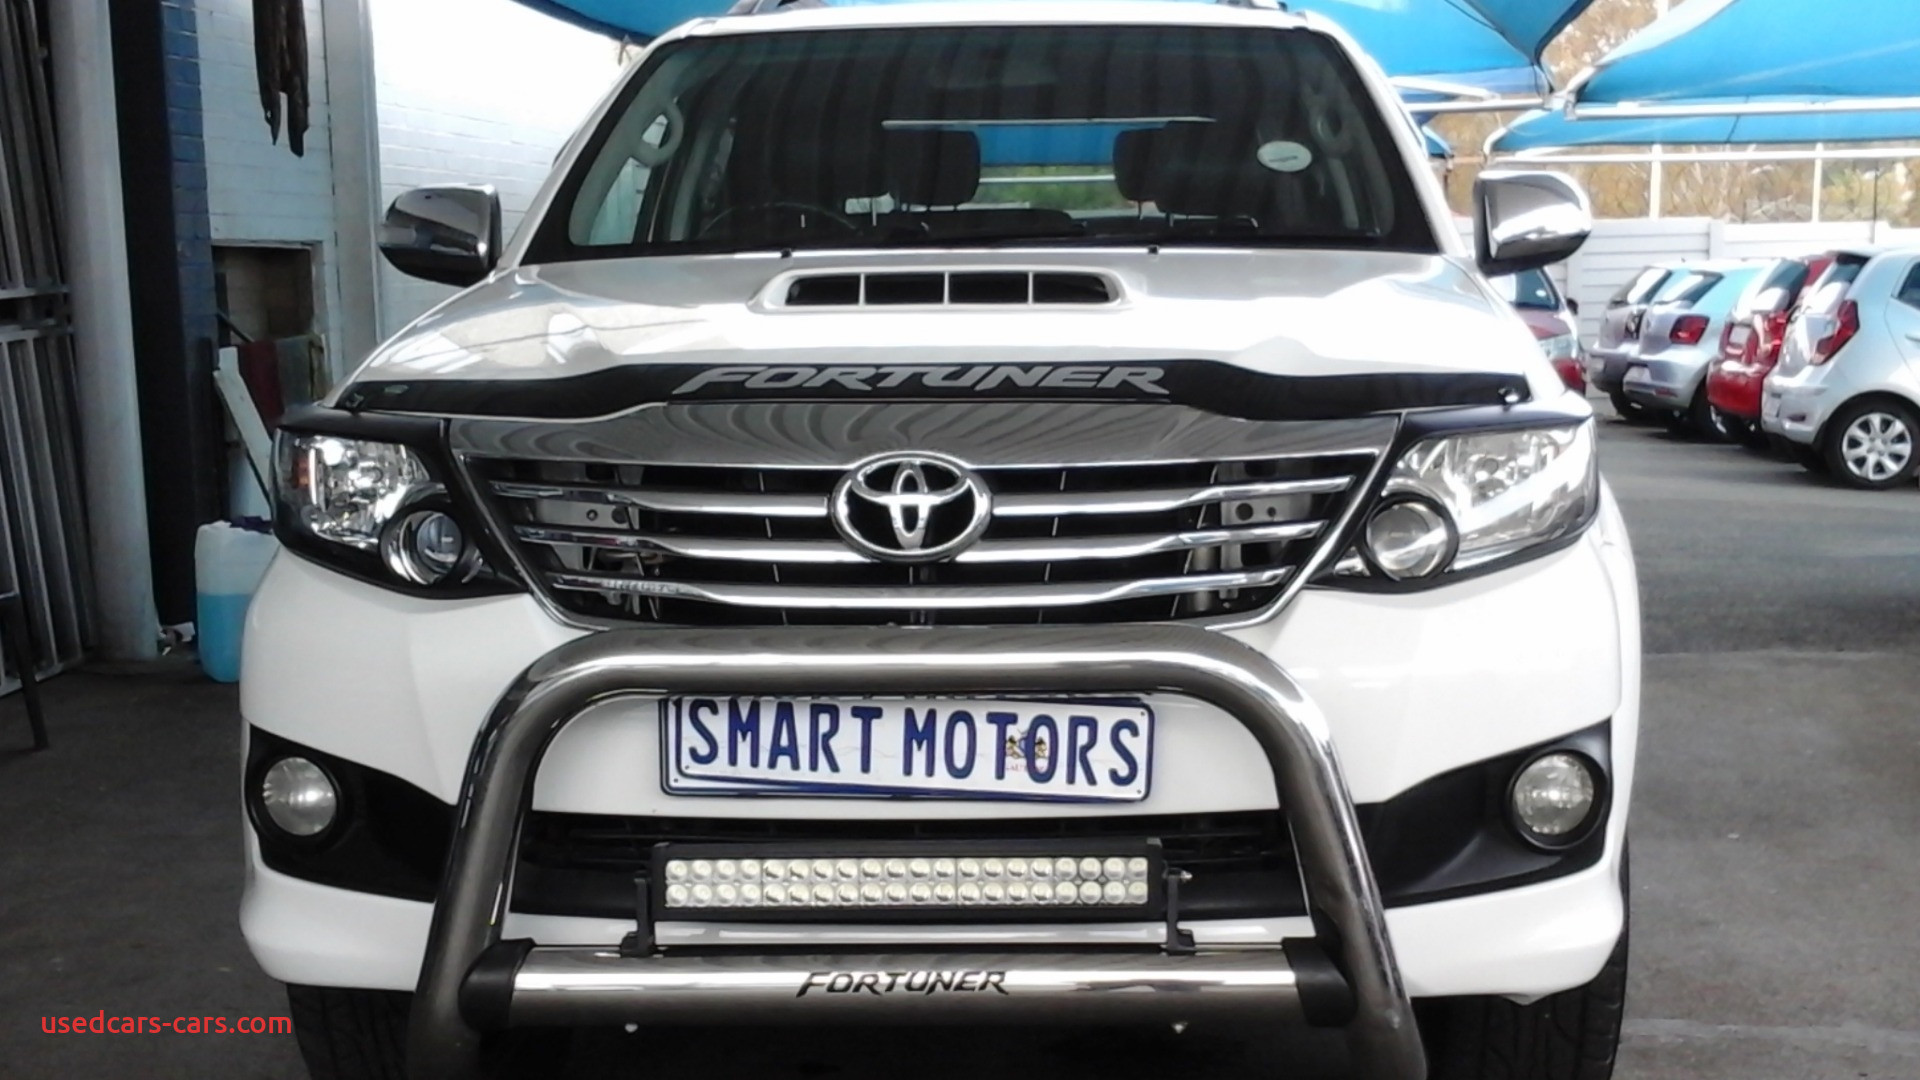 Used Cars for Sale Za Beautiful toyota fortuner 3 0d 4d for Sale In Gauteng